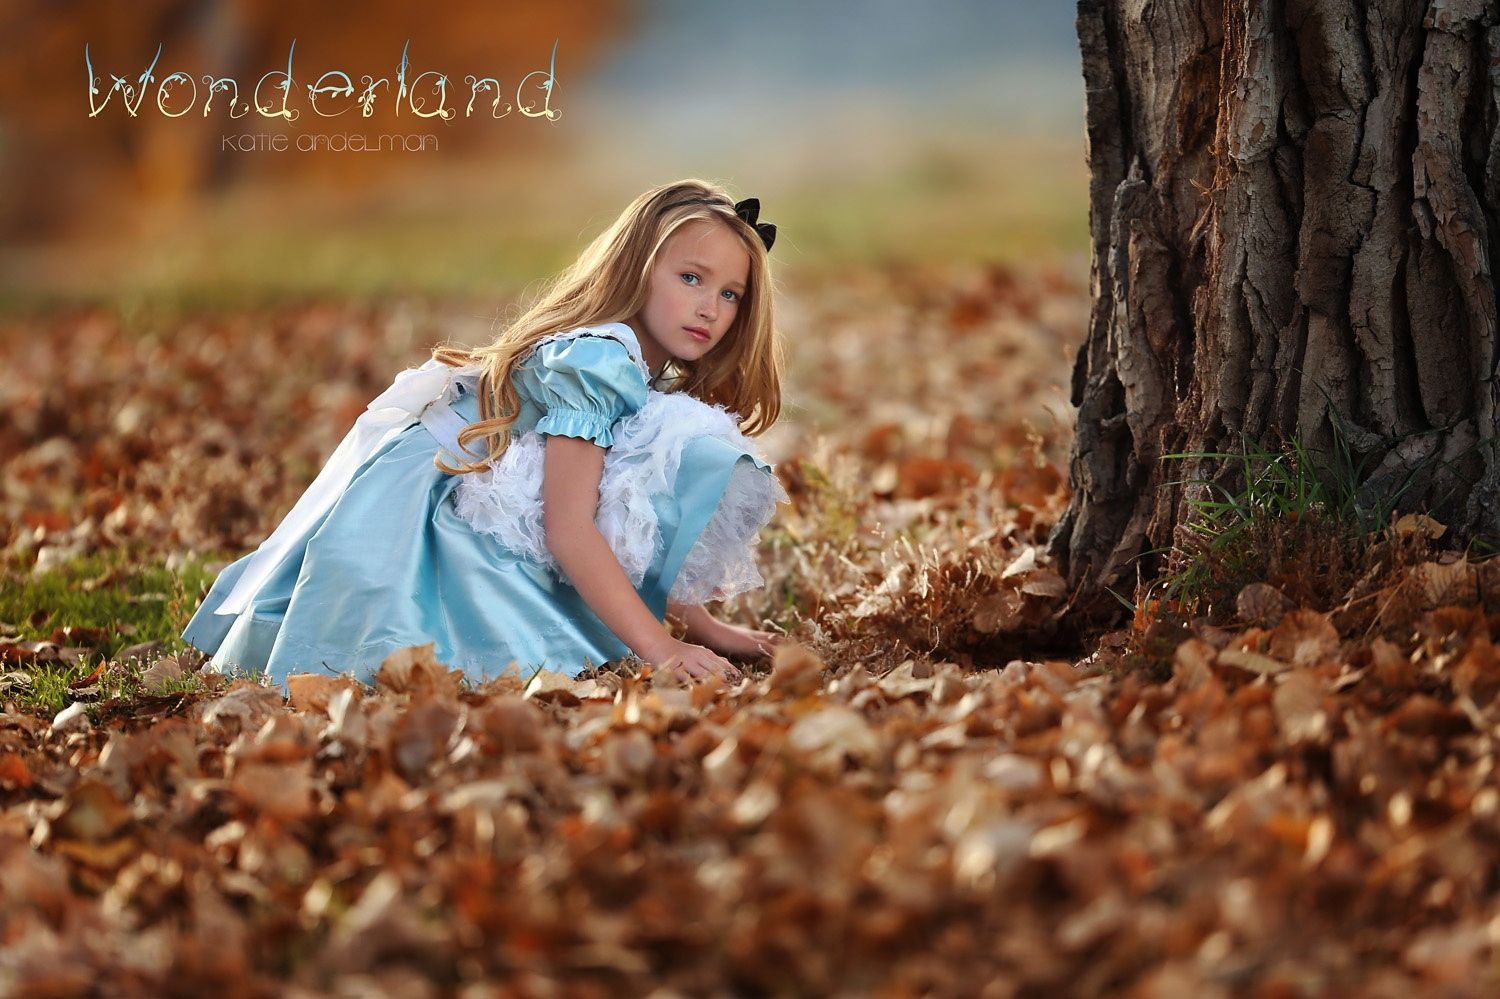 """Wonderland - Thank you so much for following my work!! For images and information on webinars and workshops, please visit me on my <a href=""""http://www.facebook.com//katieandelmanphotography """">Facebook Page</a> or on my <a href=""""http:// www.katieandelman.com """">Website</a>"""